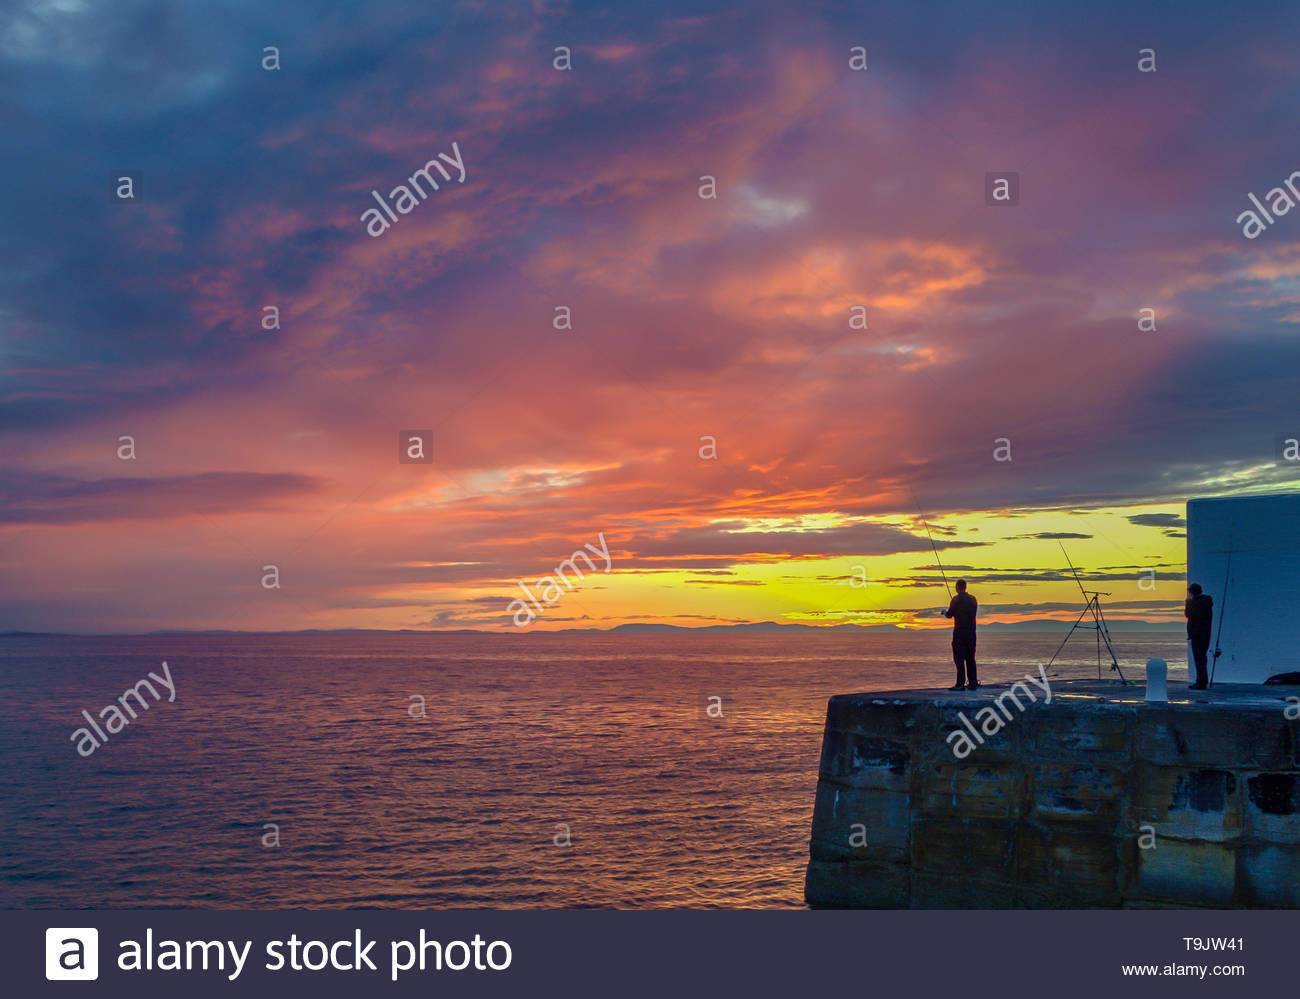 Fishing off Harbour - Stock Image